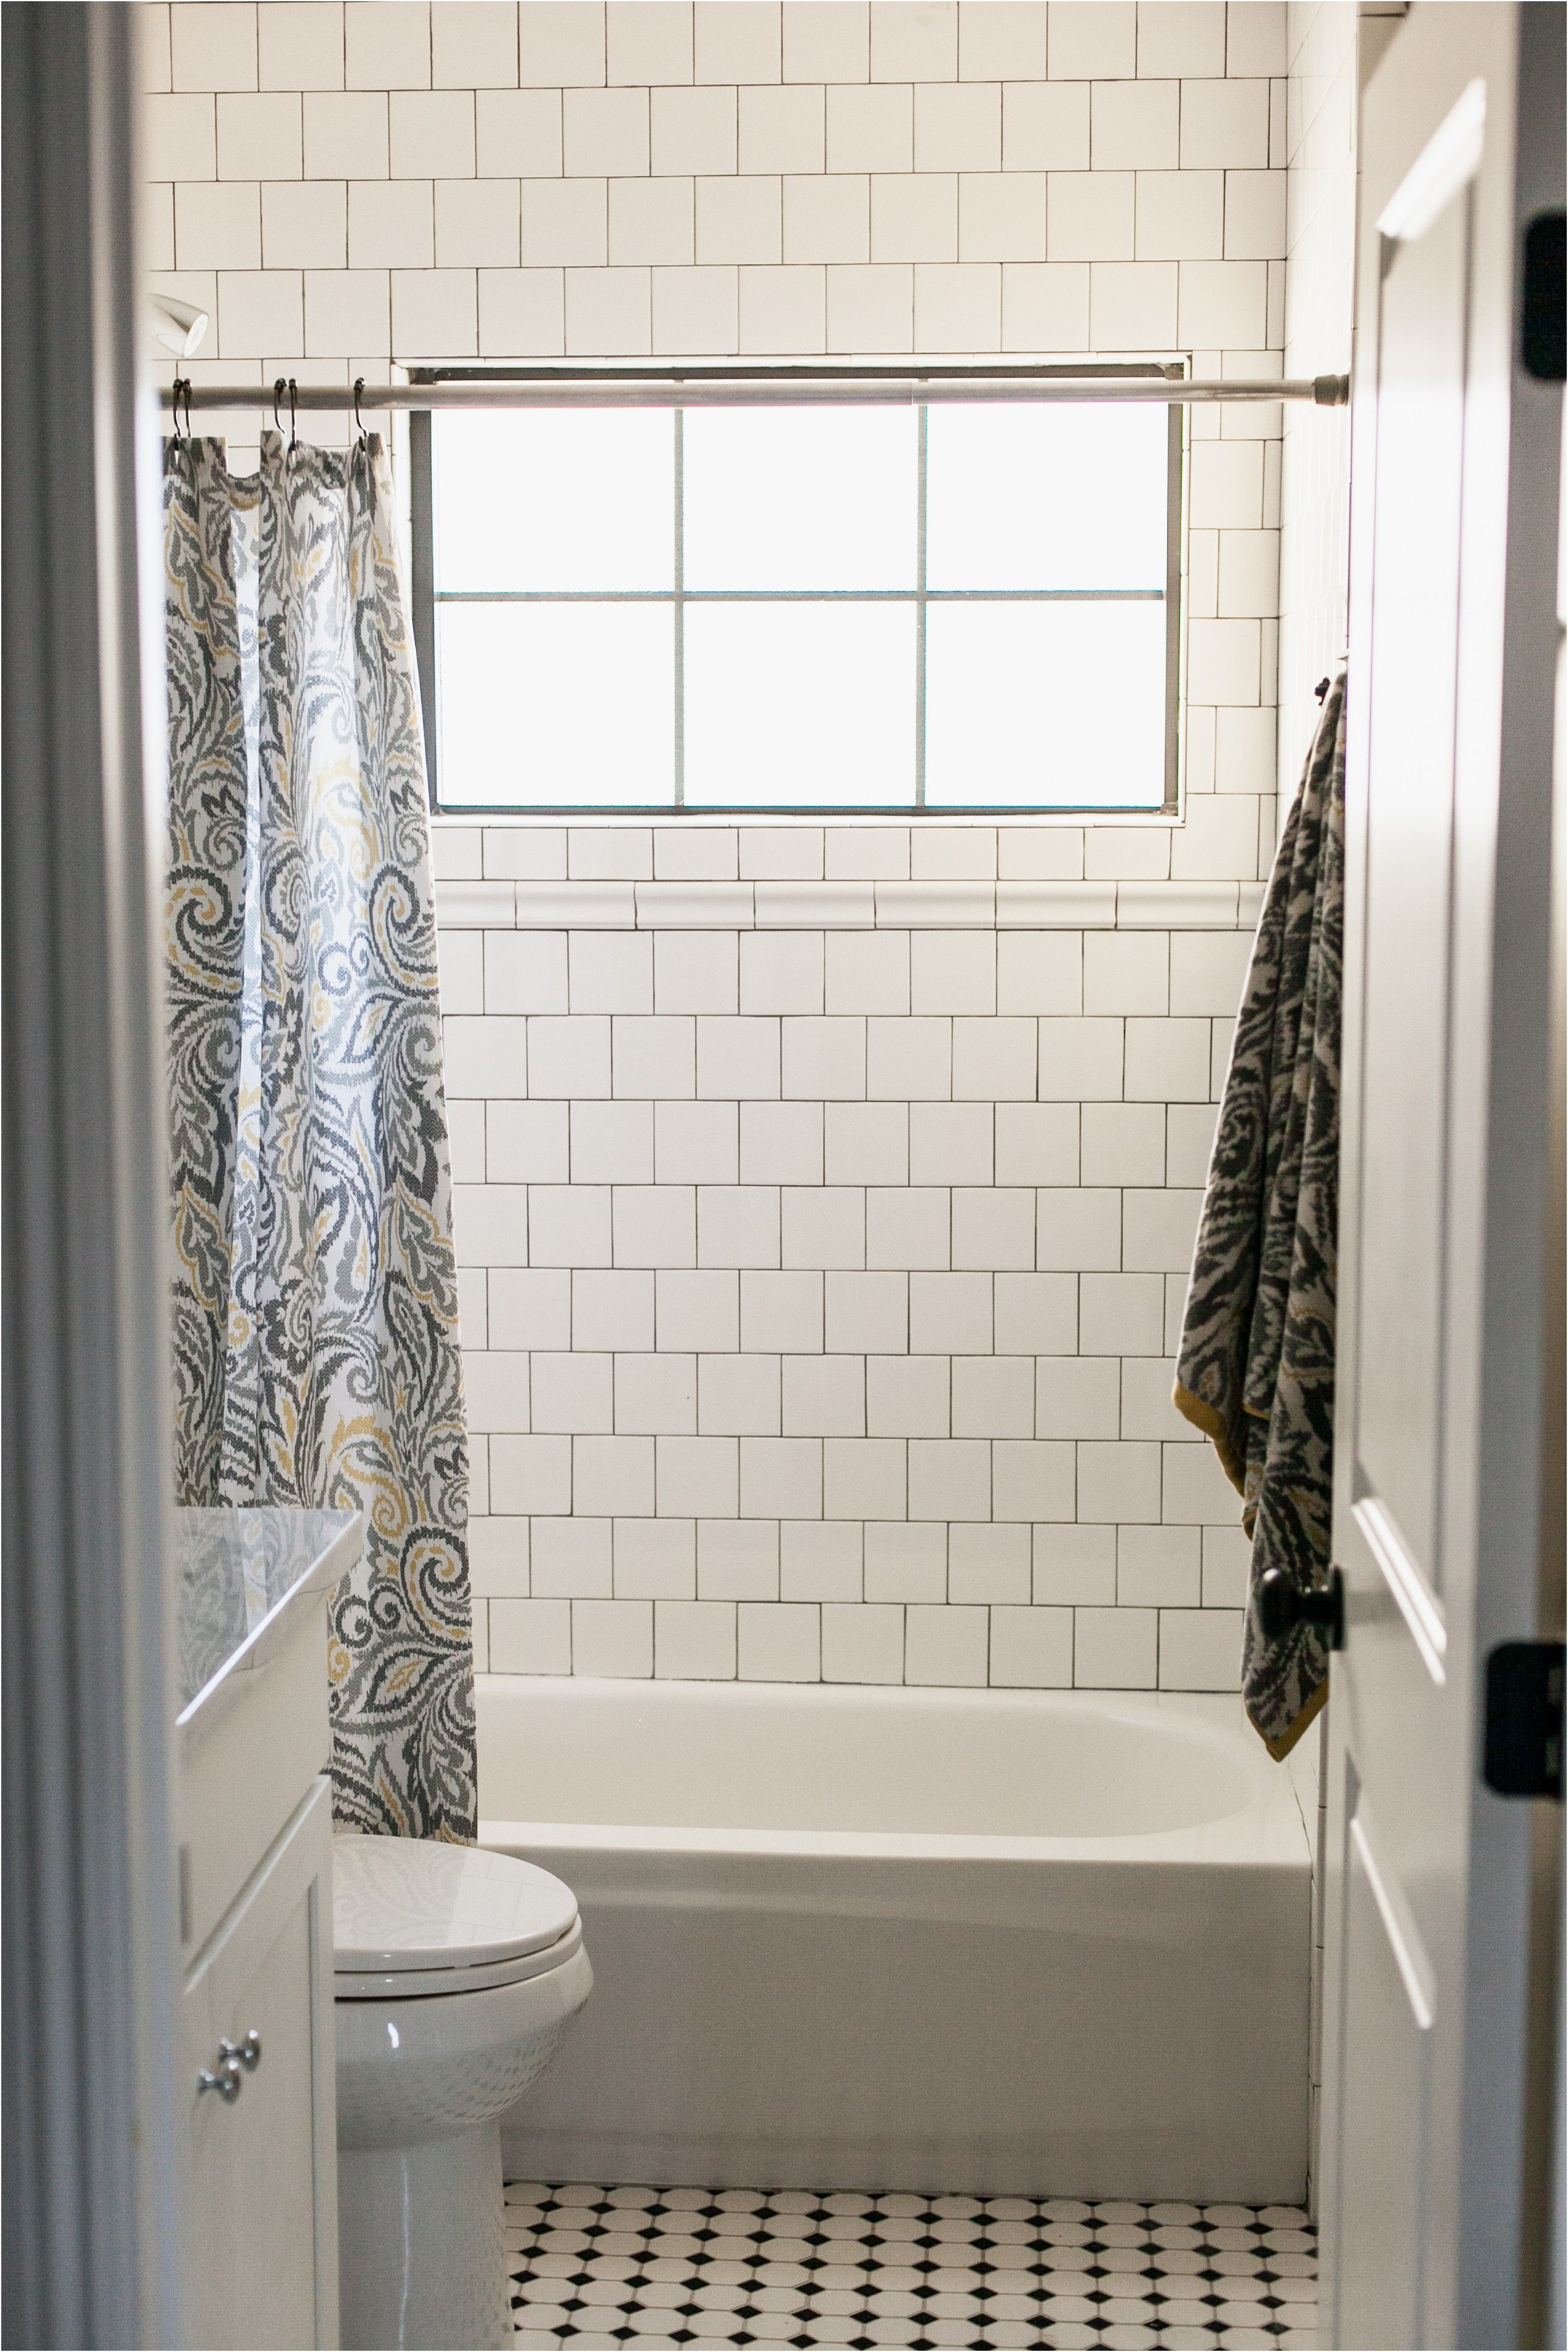 4x4 bathroom tile adorable tile installations inspiration from 4X4 ...